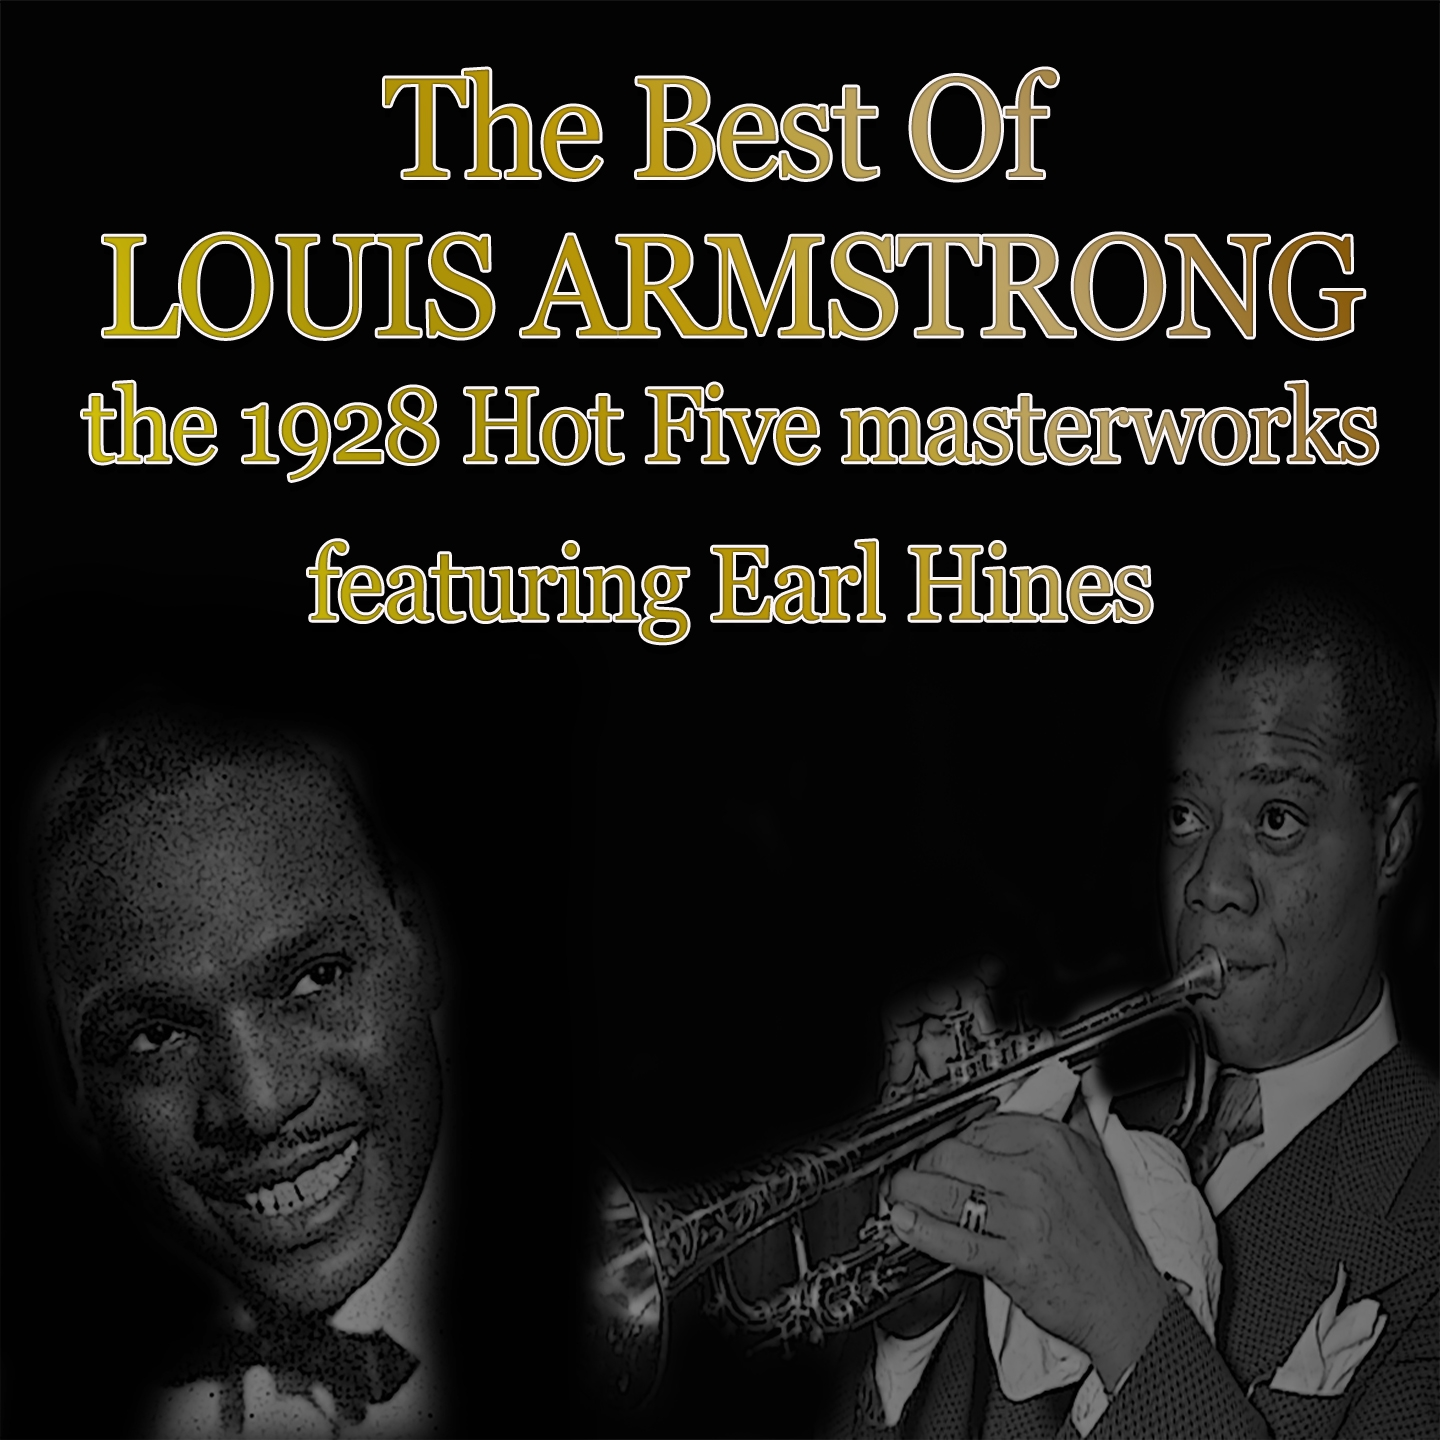 The Best of Louis Armstrong: The 1928 Hot Five Masterworks